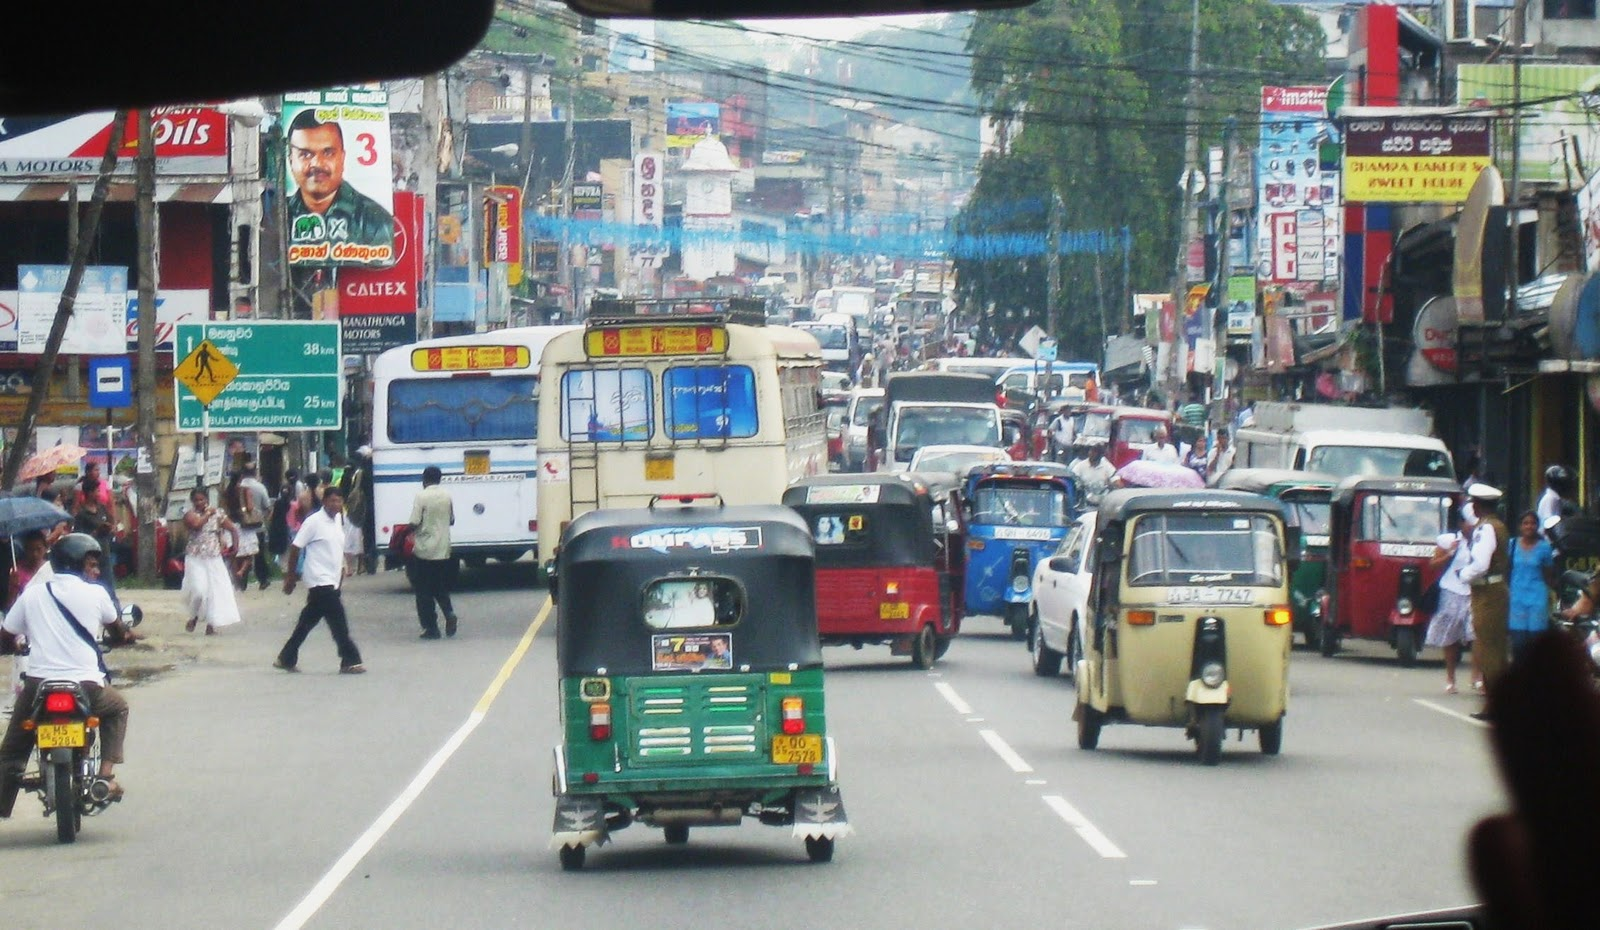 traffic congestion in sri lanka Colombo: the new tariffs on car imports in sri lanka are aimed at discouraging imports of big cars to ease traffic congestion while ensuring revenue for the government, finance minister ravi.